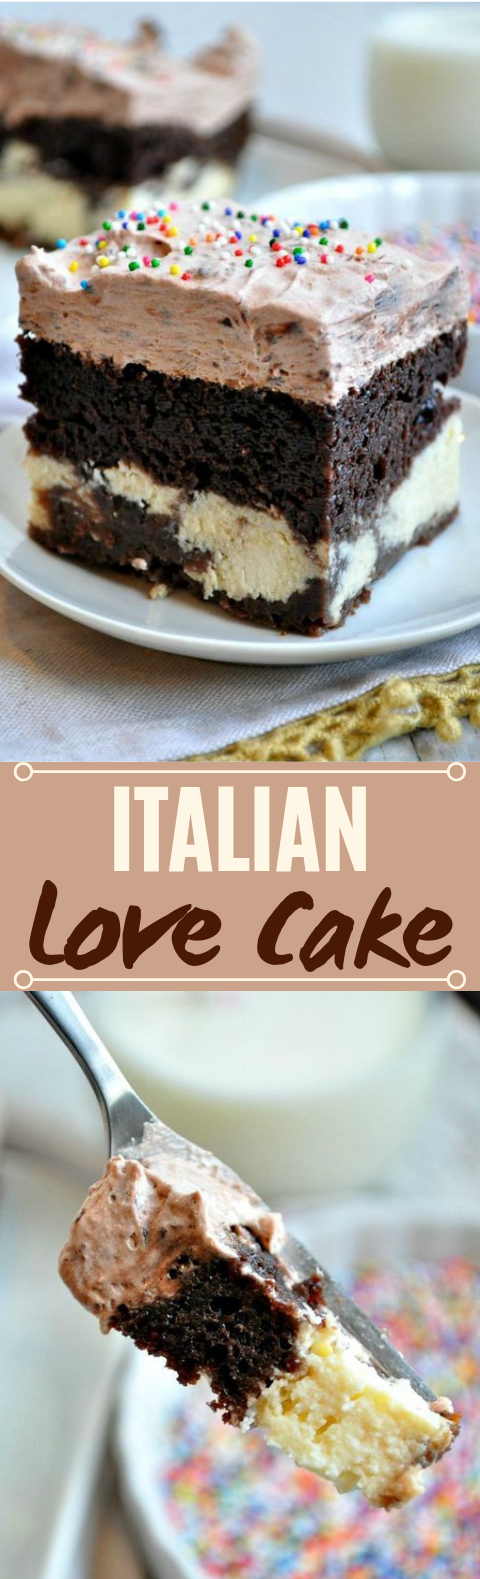 Easy Chocolate Italian Love Cake #desserts #recipes